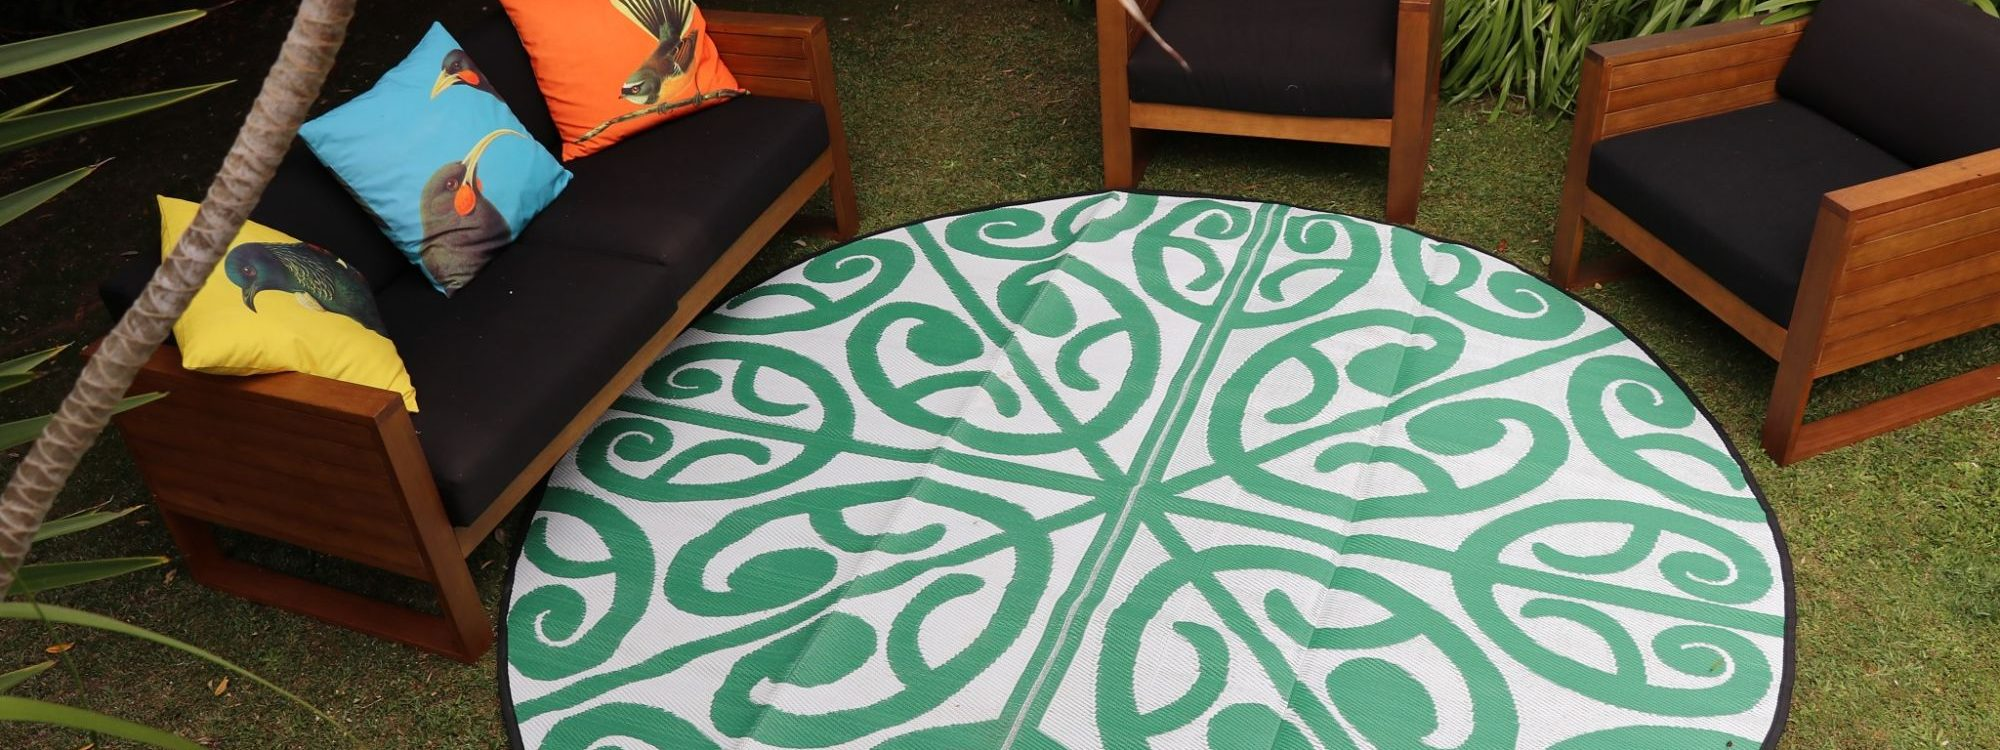 Recycled Mat Collection - fashionable mats for a picnic, at the beach, in an outdoor area